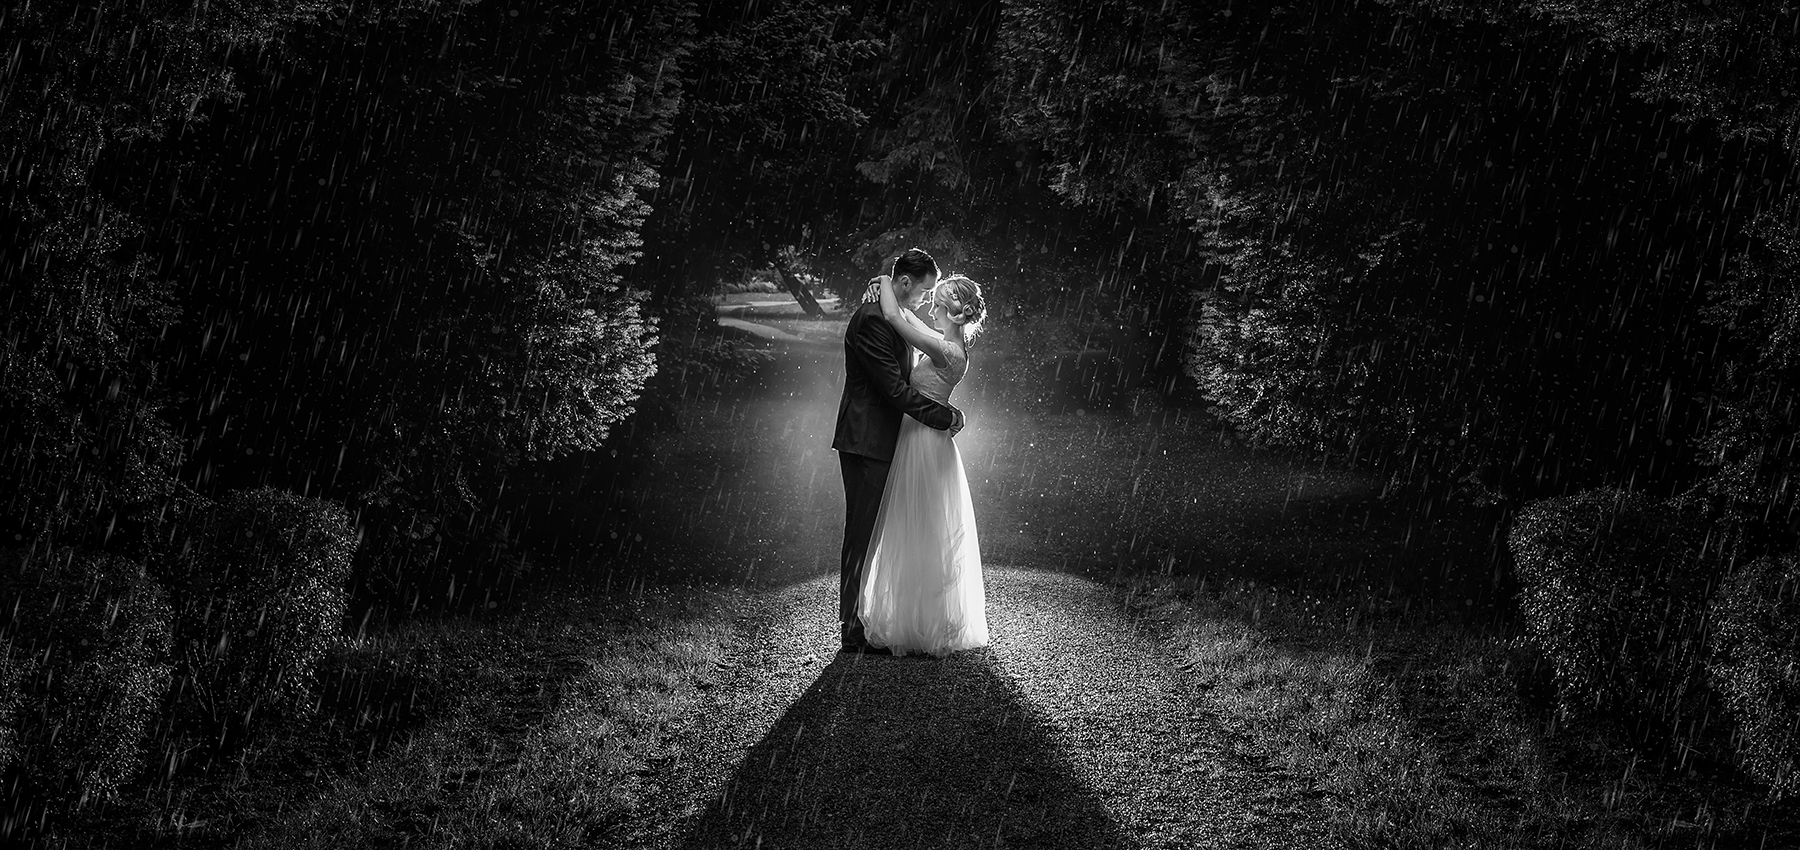 Exclusive One on One Wedding Photography Workshop Damjan Fiket